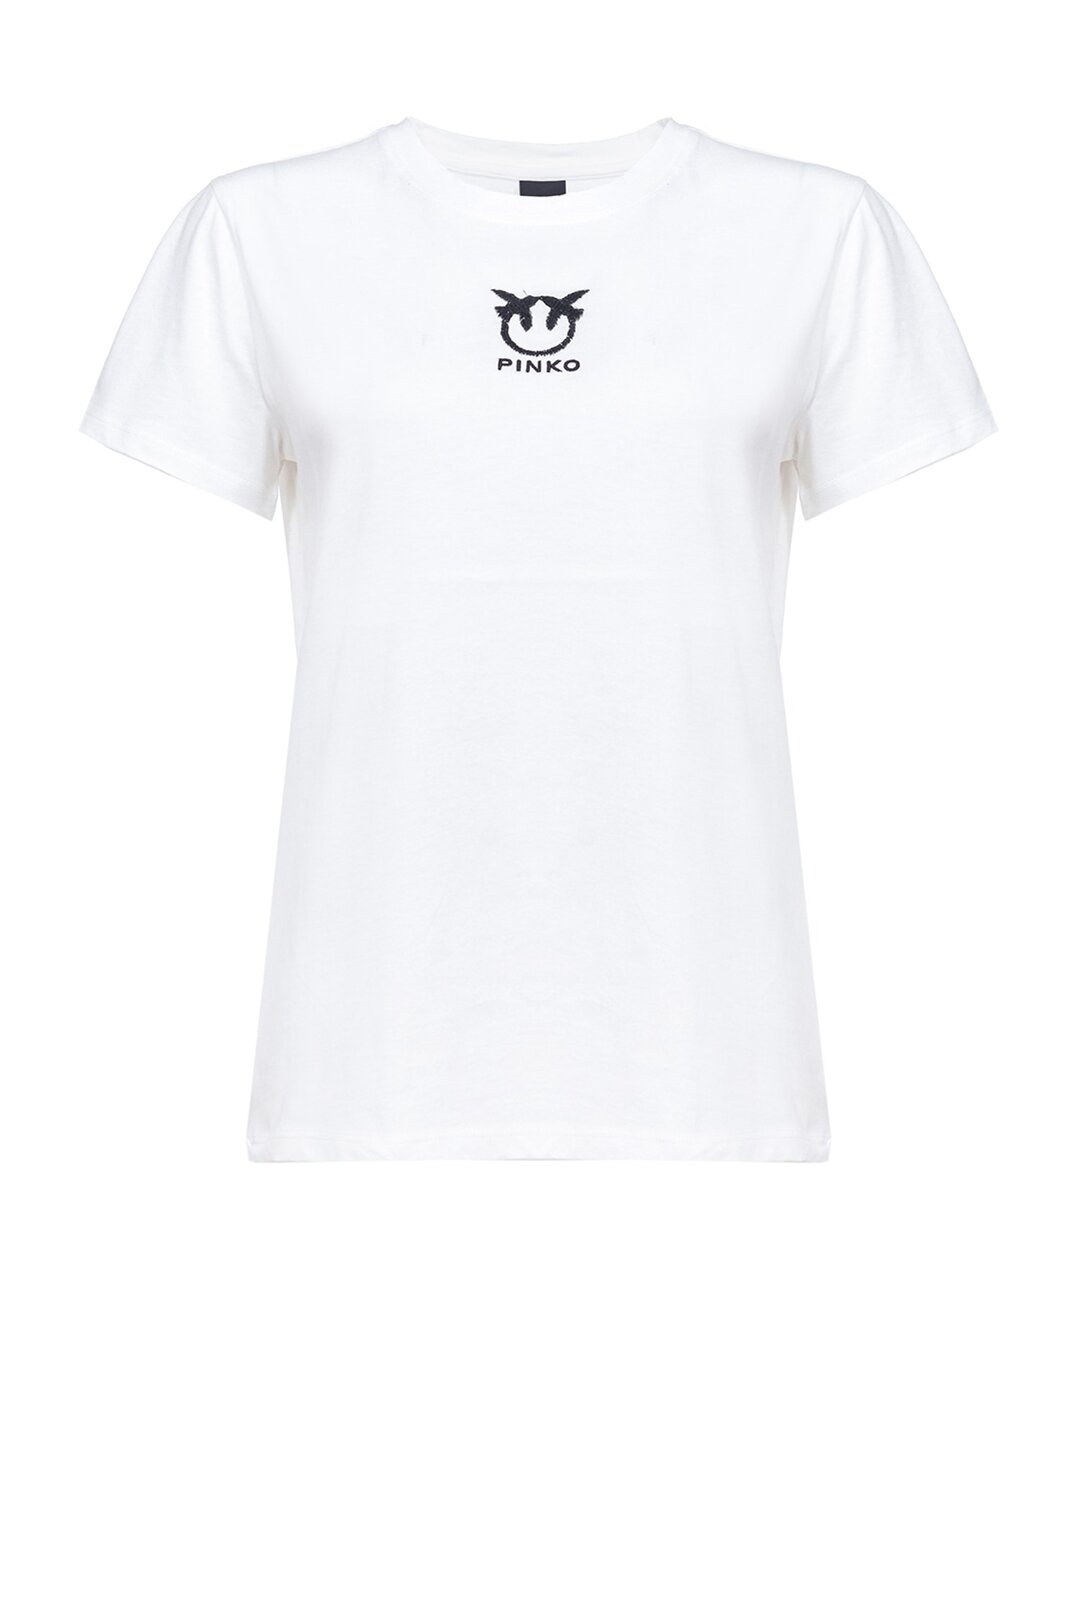 Love Birds Logo T-Shirt - Pinko